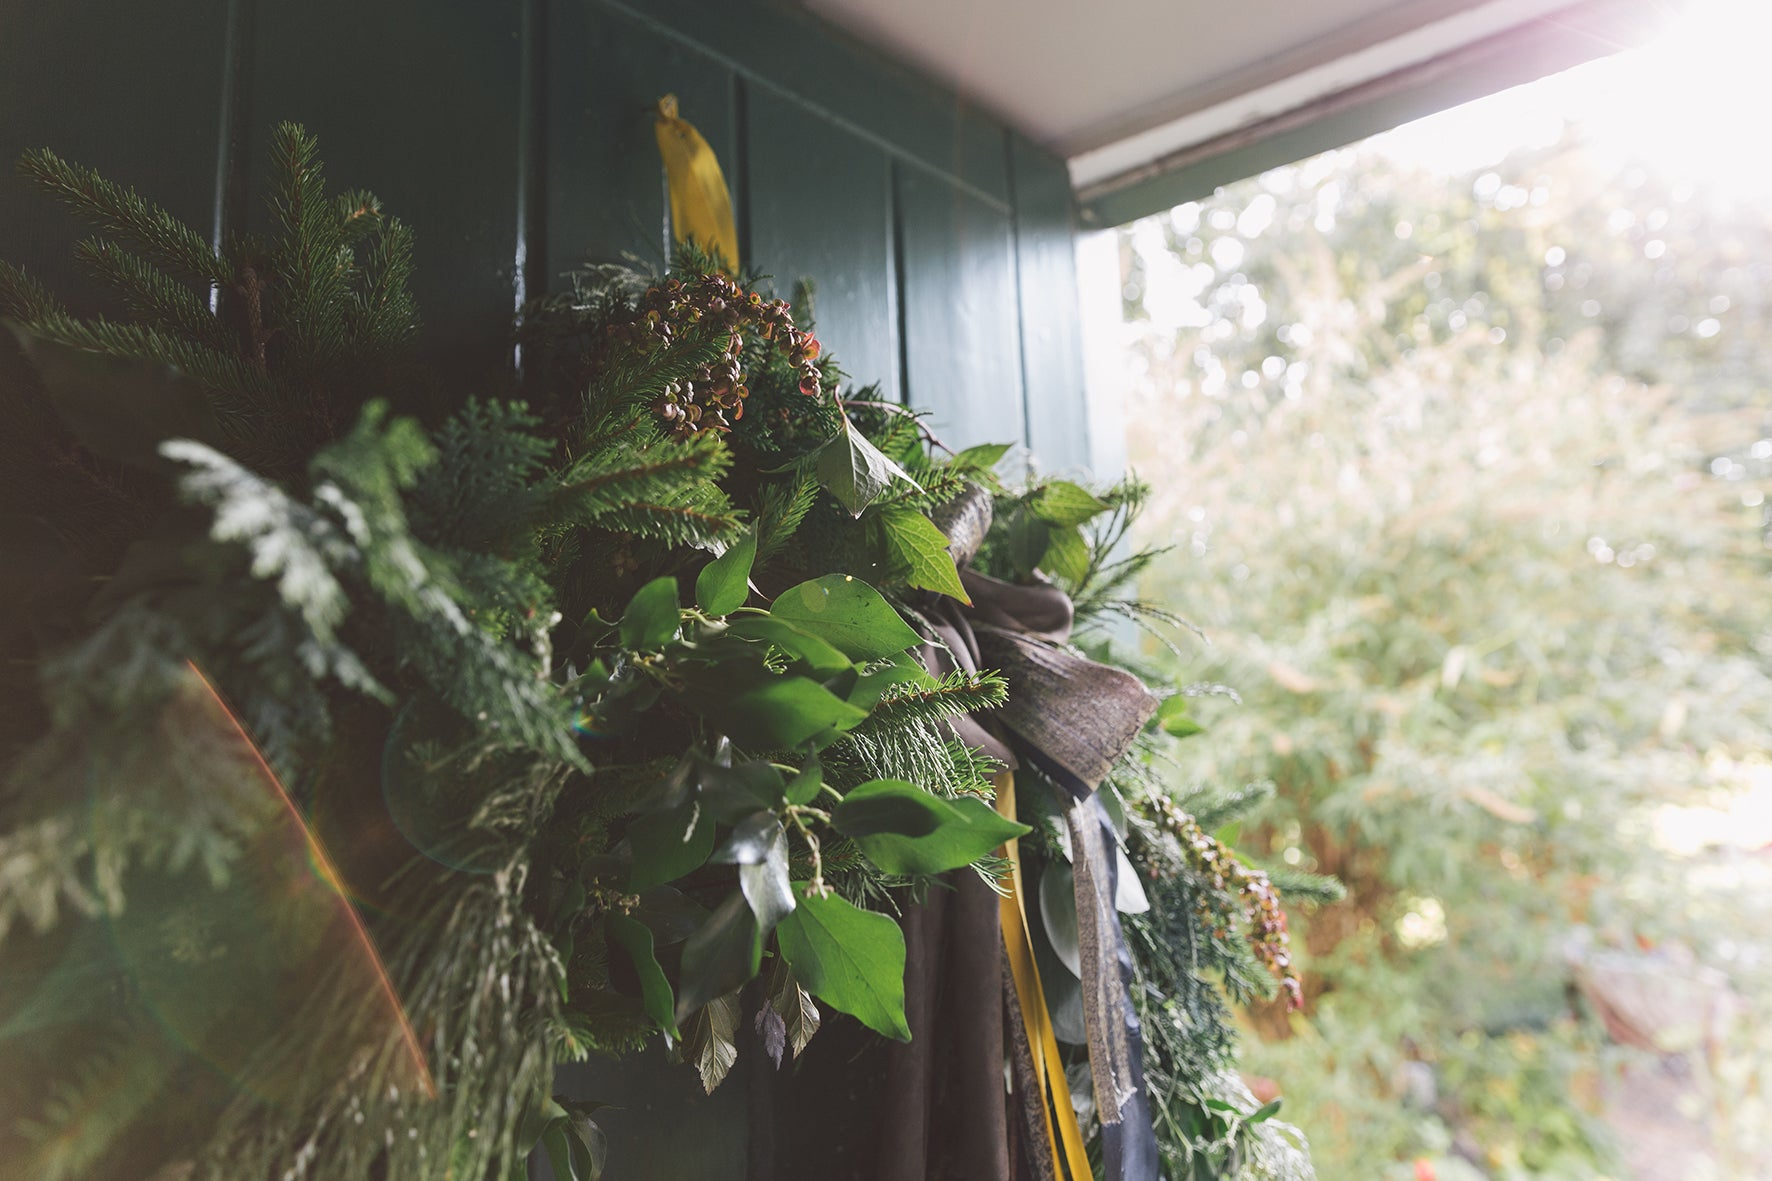 LUXURY FOLIAGE WREATH WORKSHOP - SATURDAY 7TH DECEMBER 2019 - 10am - 12.30pm